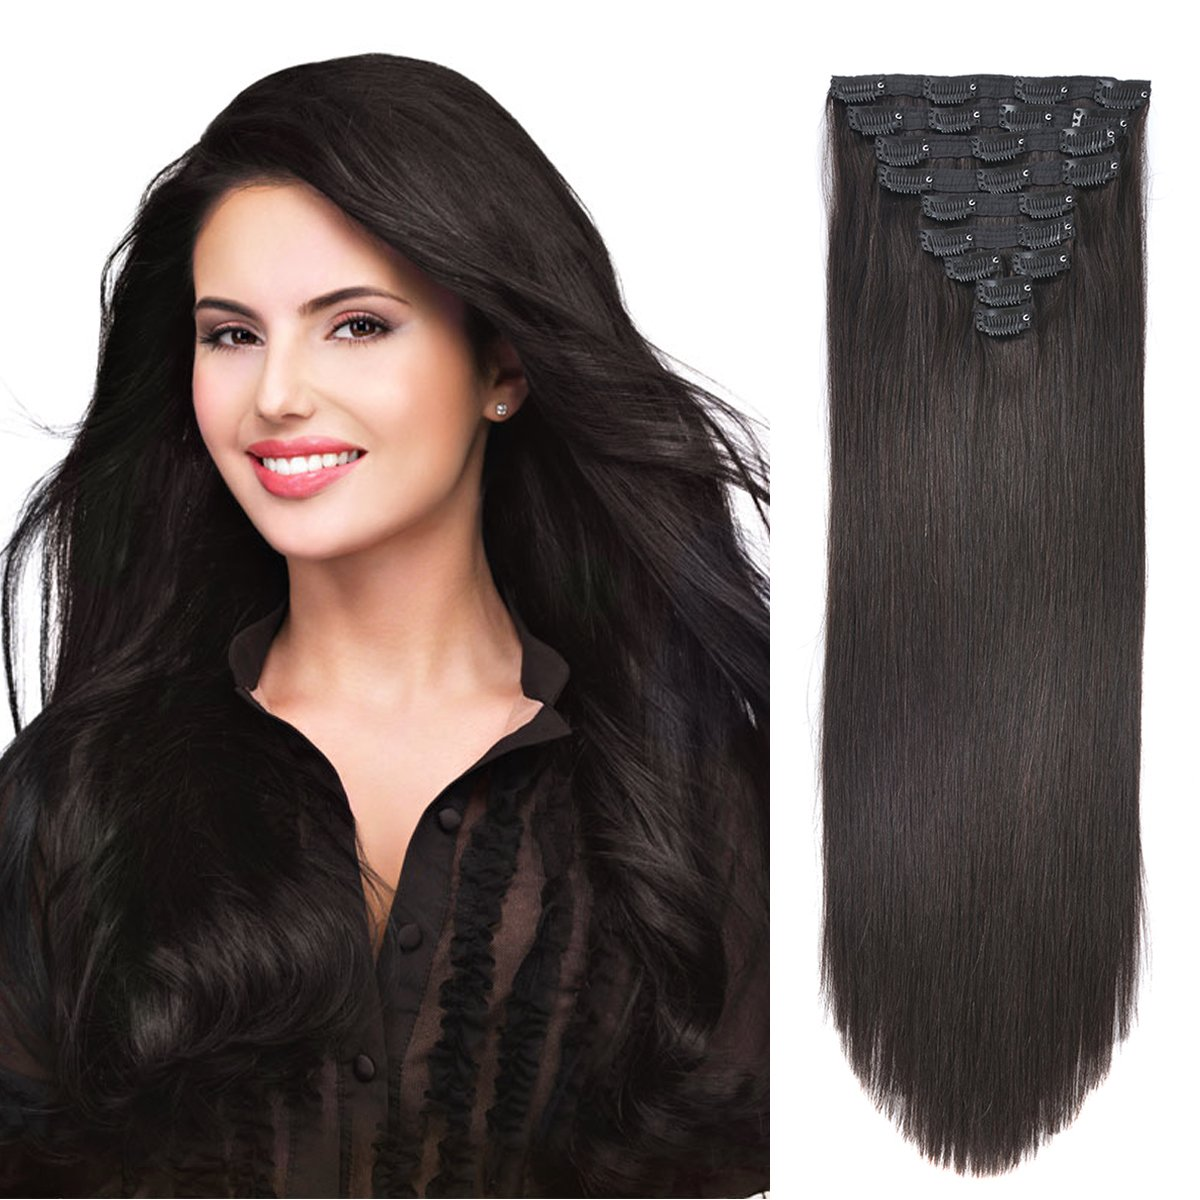 20'' Clip in Human Hair Extensions Natural Hair Clip in Extensions for Thick Hair Full Head Off Black #1B 10pieces 220grams/7.7oz